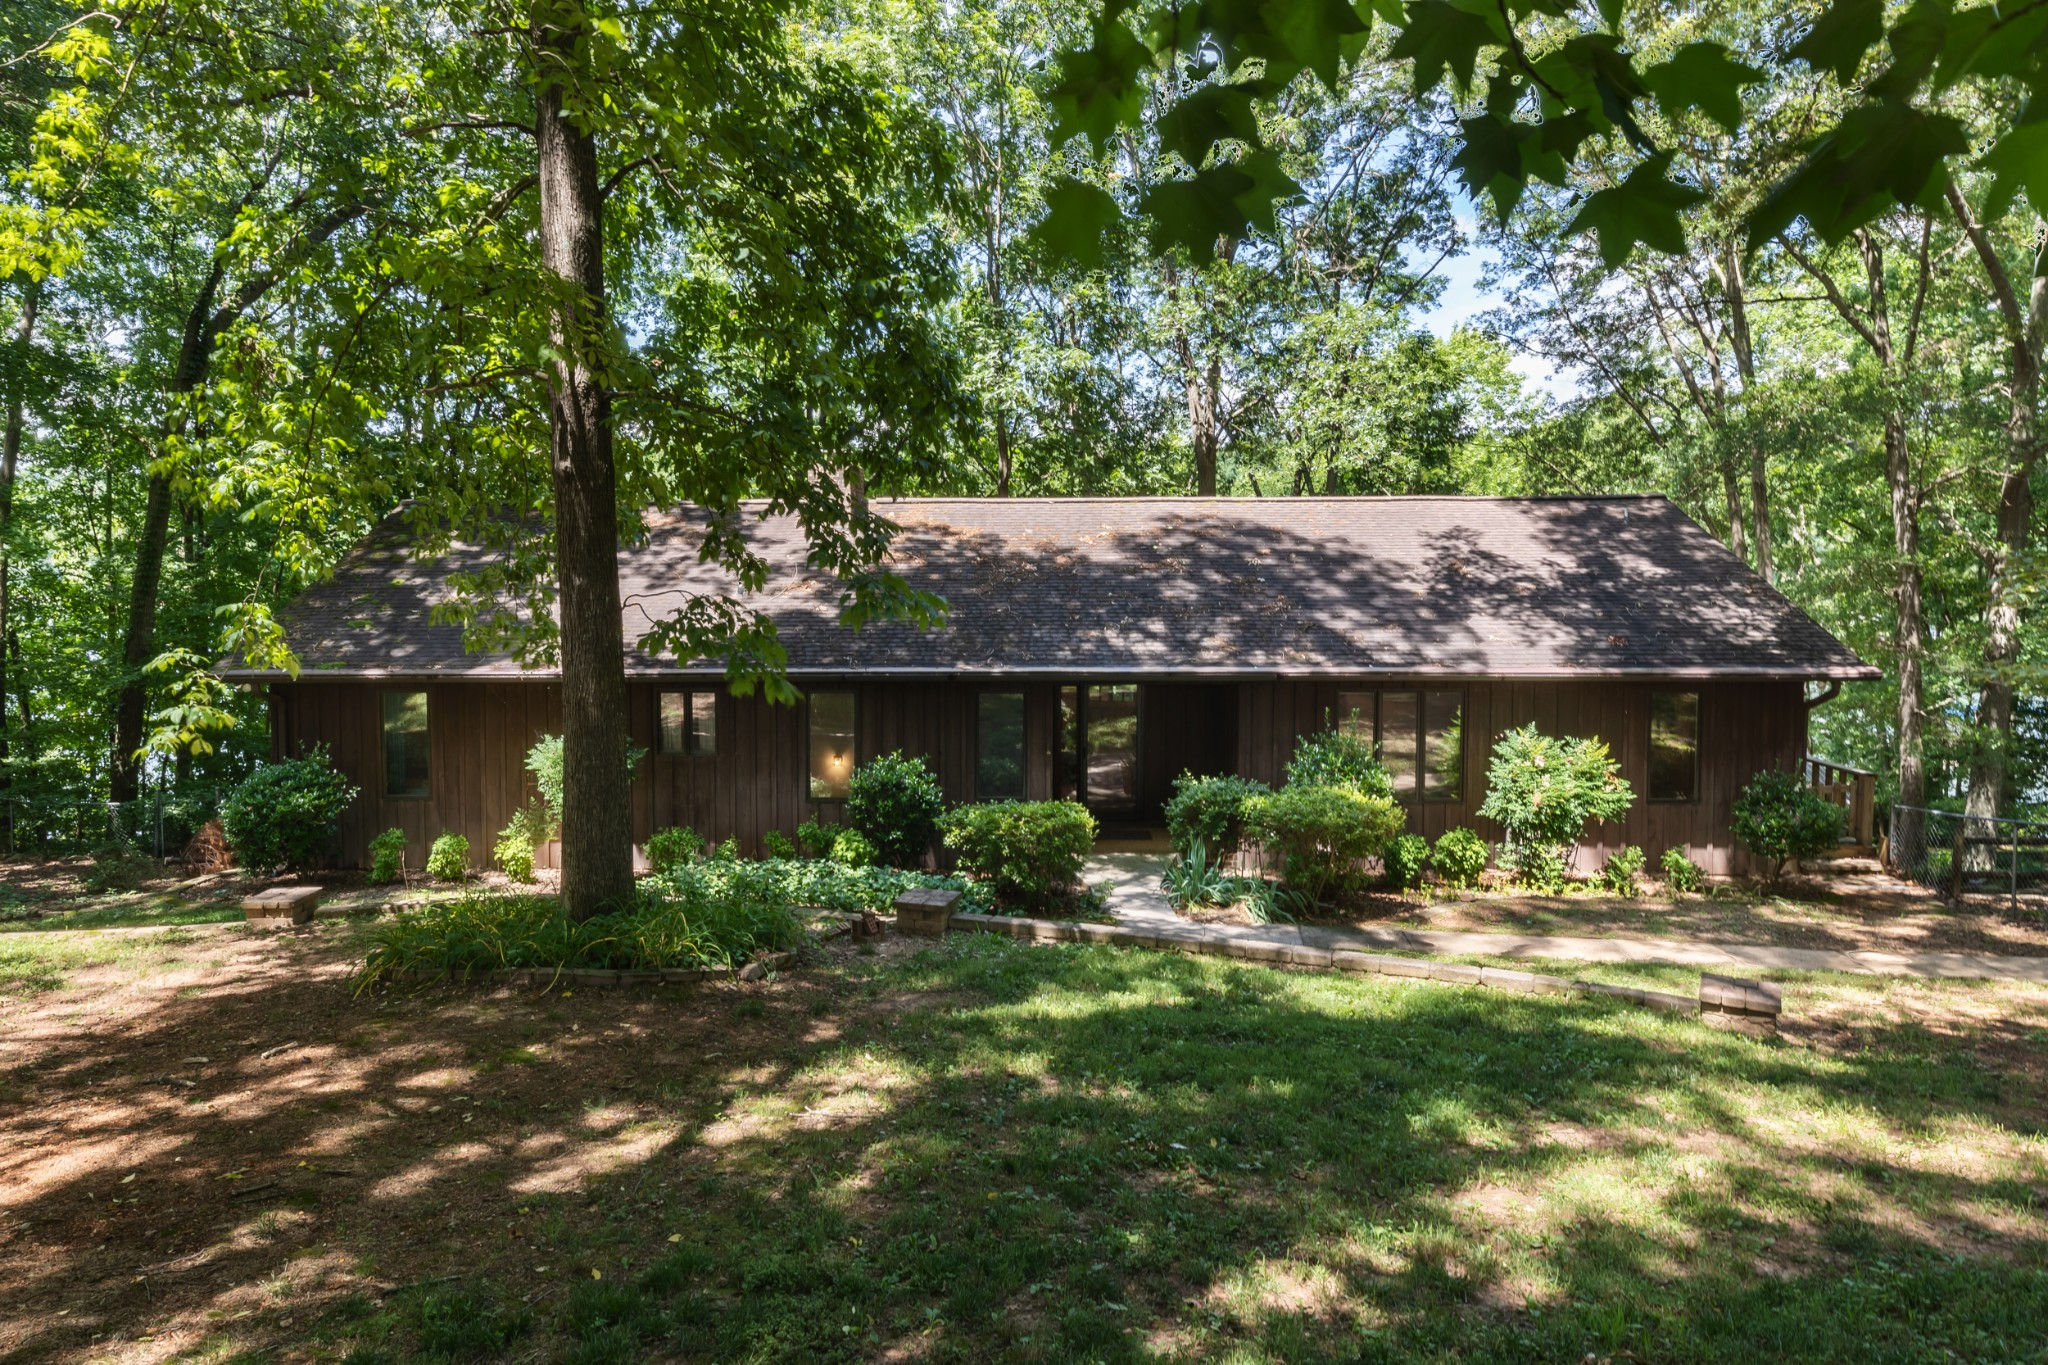 103 LAKE ST Property Photo - Estill Springs, TN real estate listing